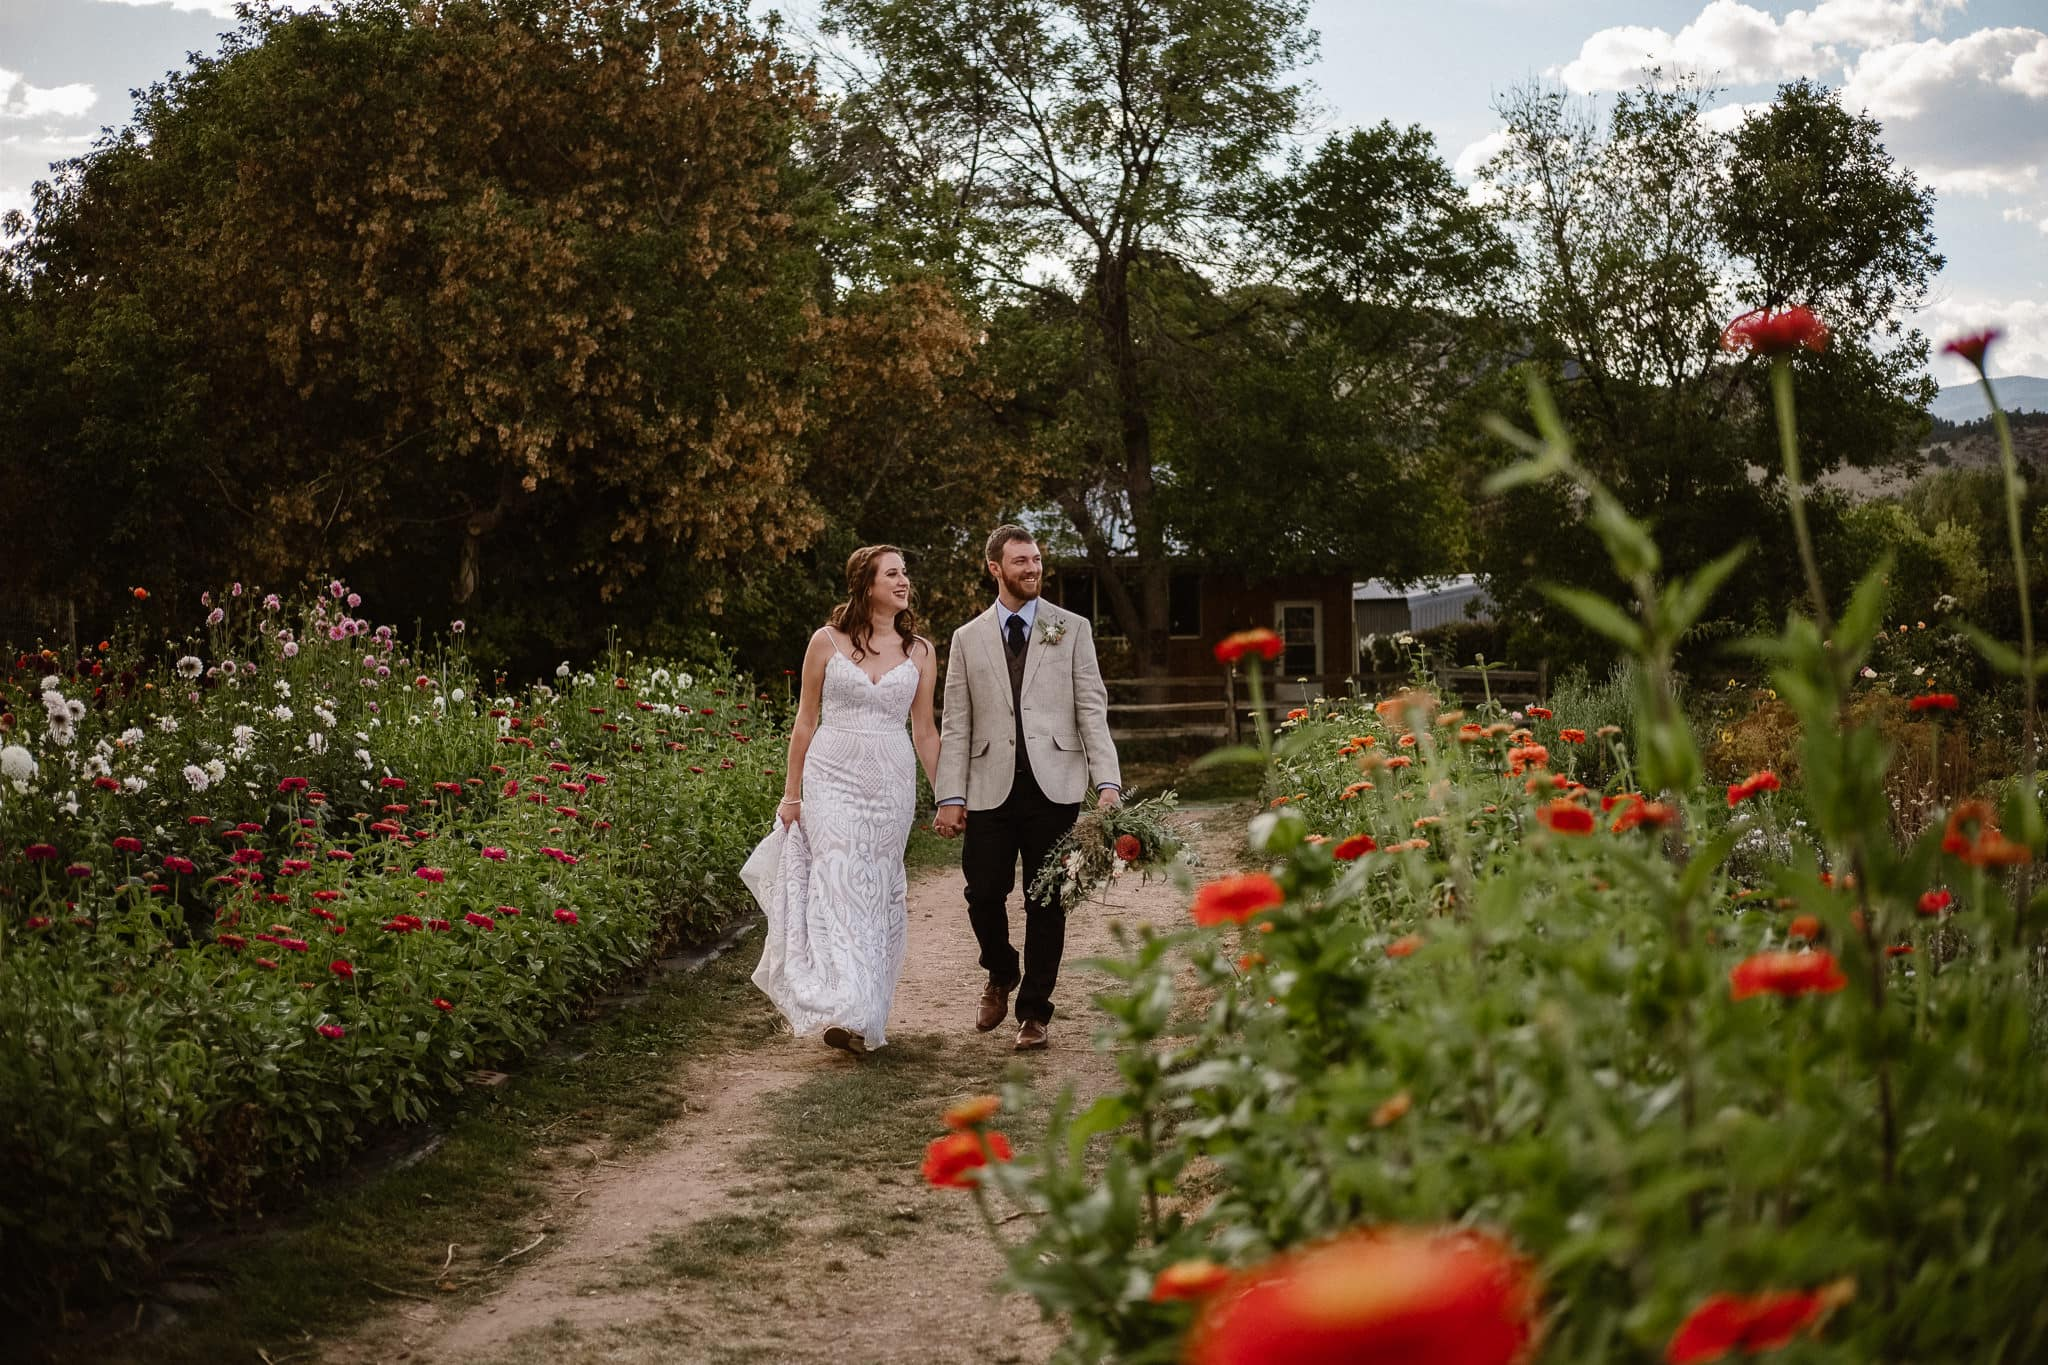 Lyons Farmette wedding photographer, Colorado intimate wedding photographer, bride and groom photos walking through flower garden